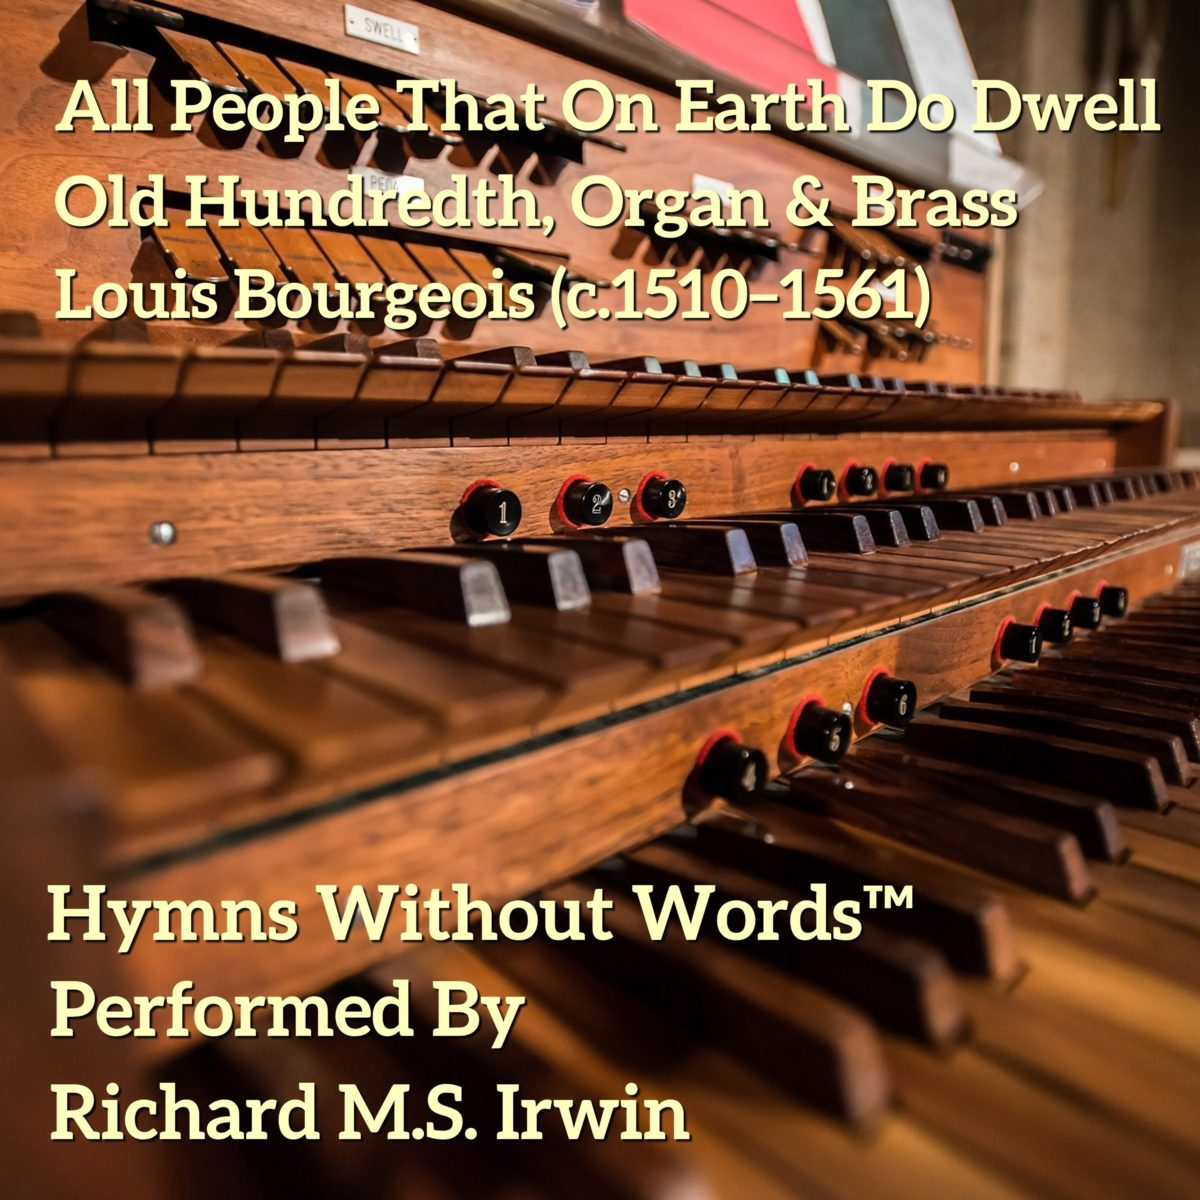 All People That On Earth Do Dwell (Old Hundredth, Organ And Descant, 5 Verses)